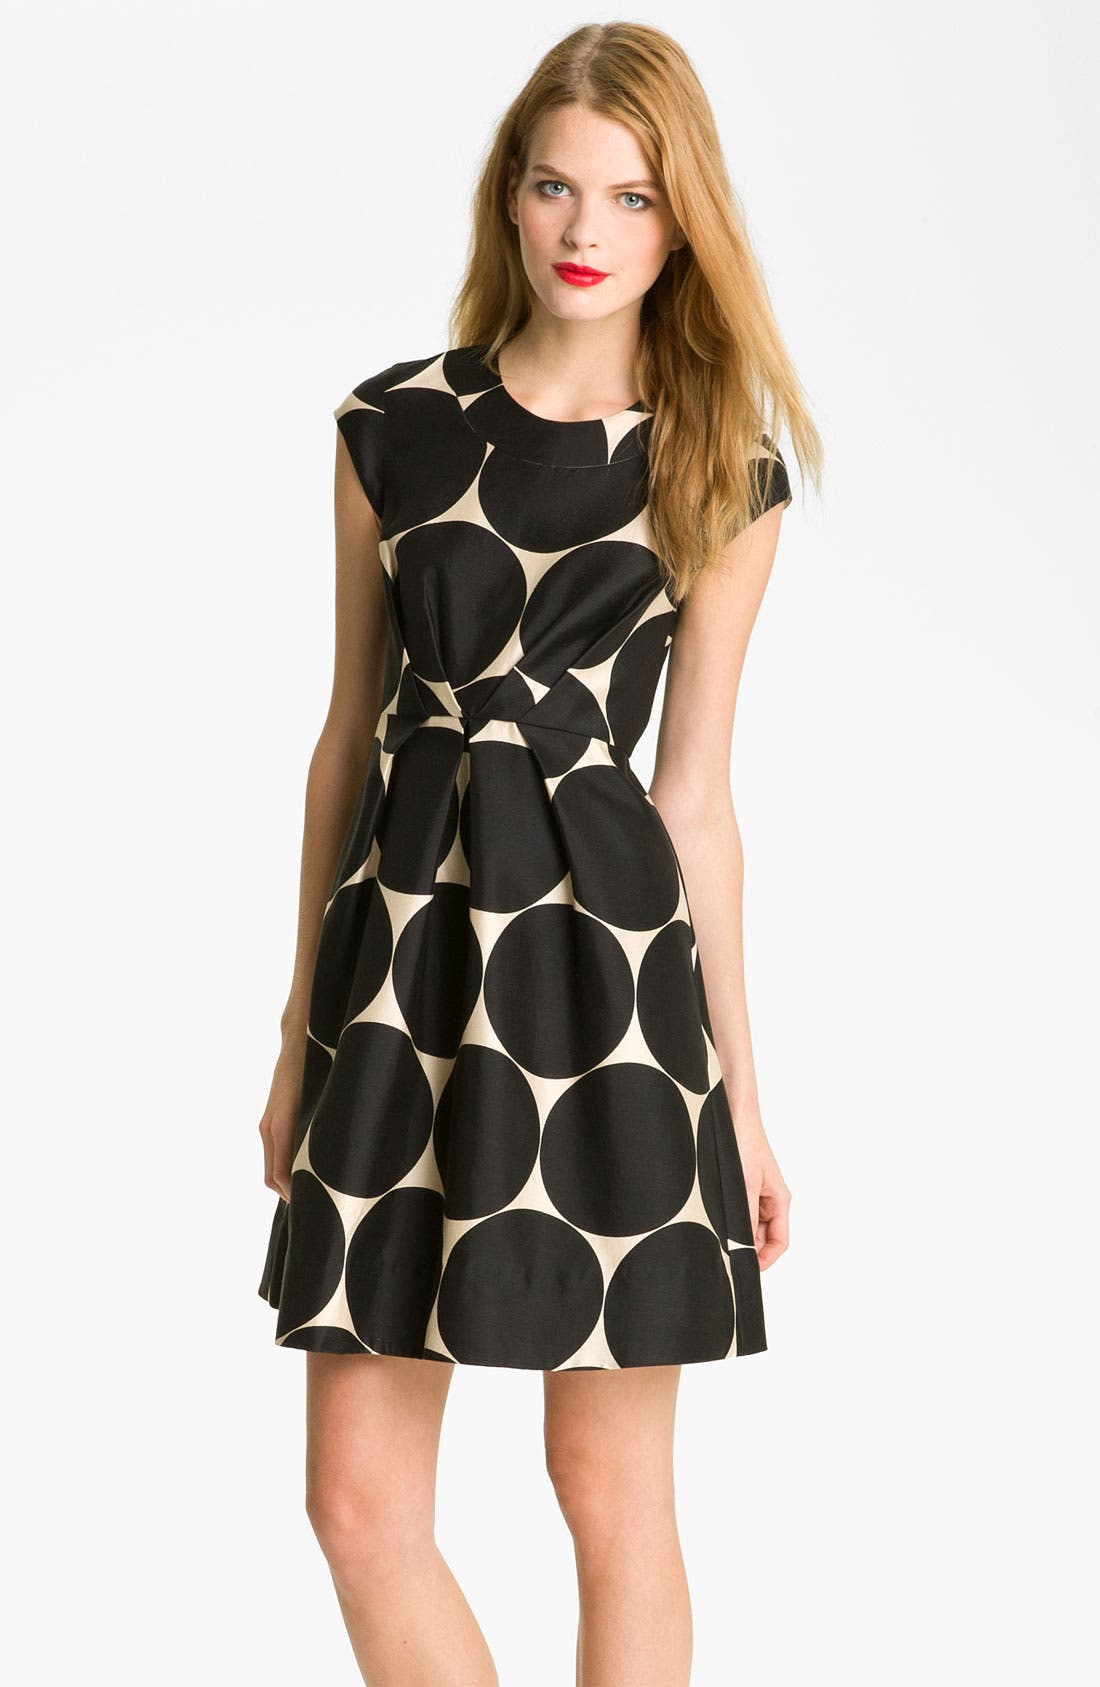 Alternate Image 1 Selected - kate spade new york 'jane' fit & flare dress (Online Exclusive)